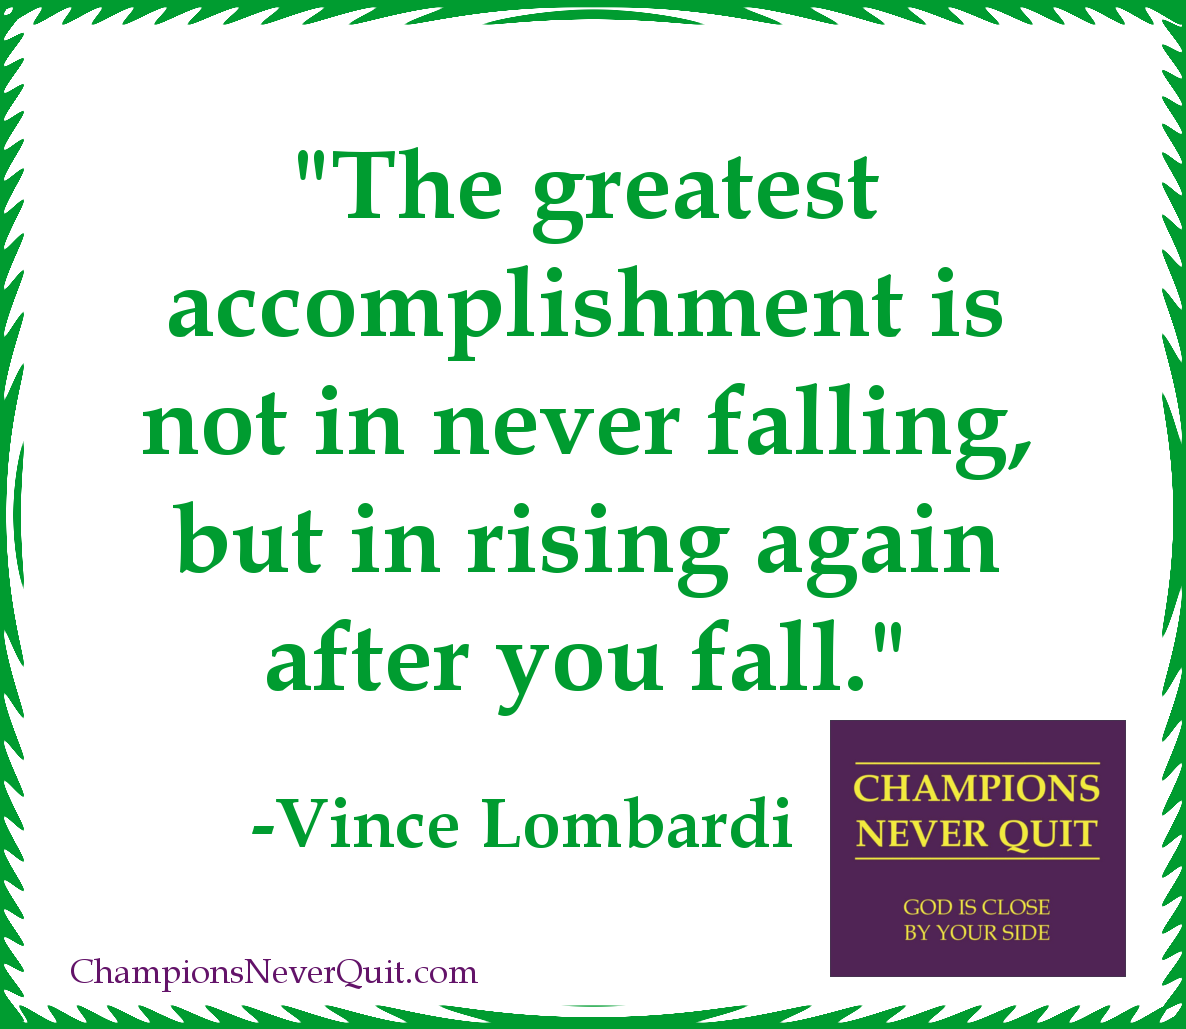 The greatest accomplishment - Vince Lombardi